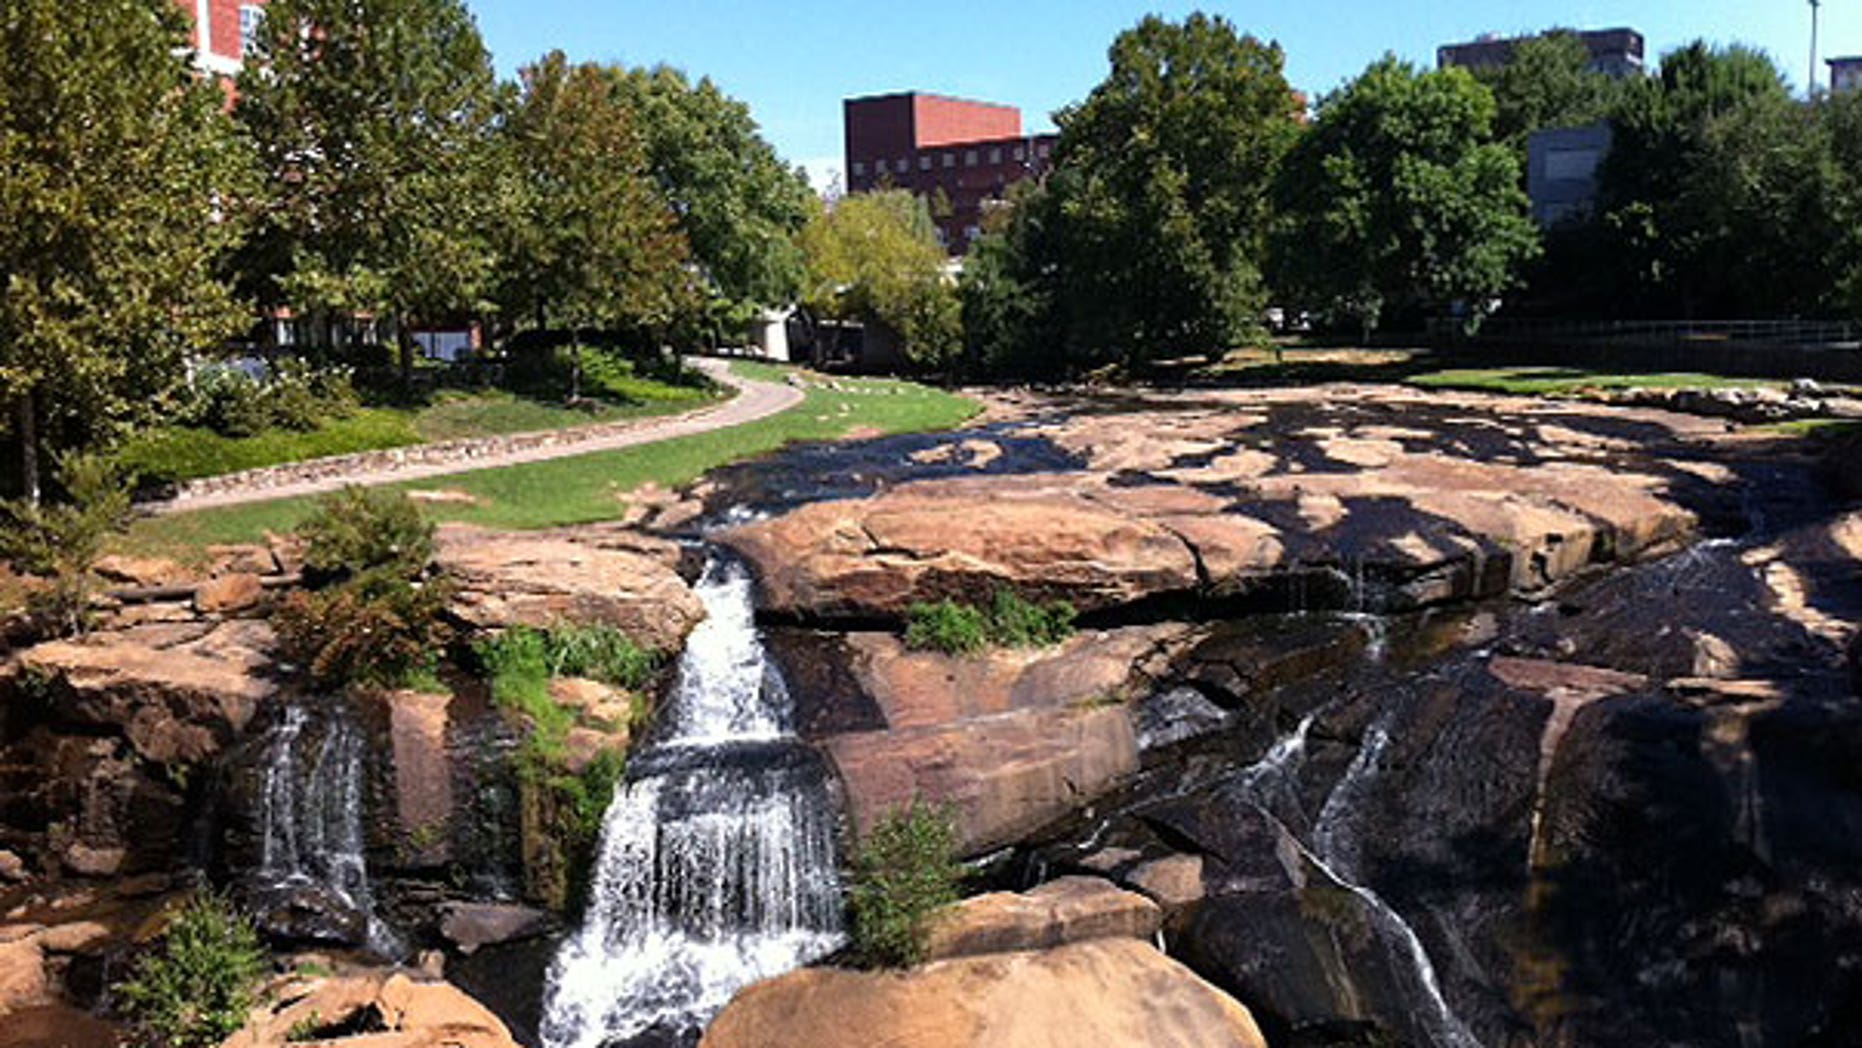 Falls Park in Greenville, S.C.